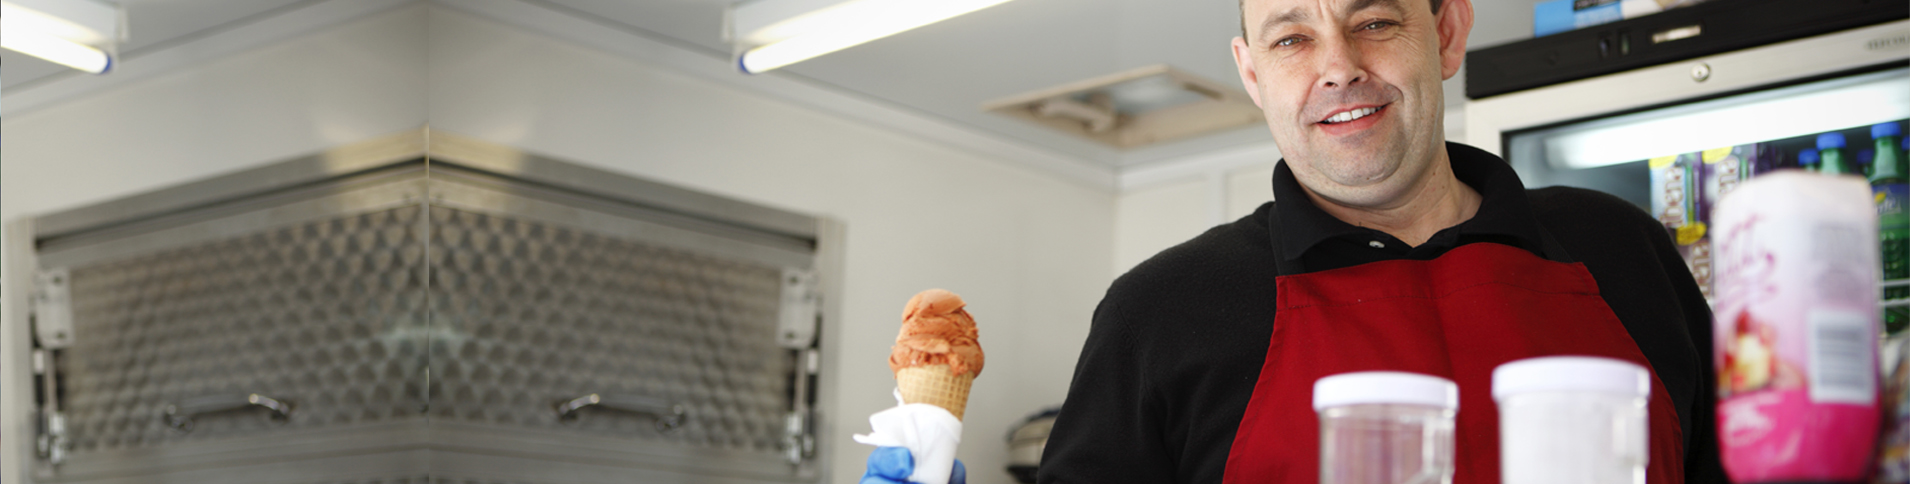 Man-in-a-ice-cream-parlor1